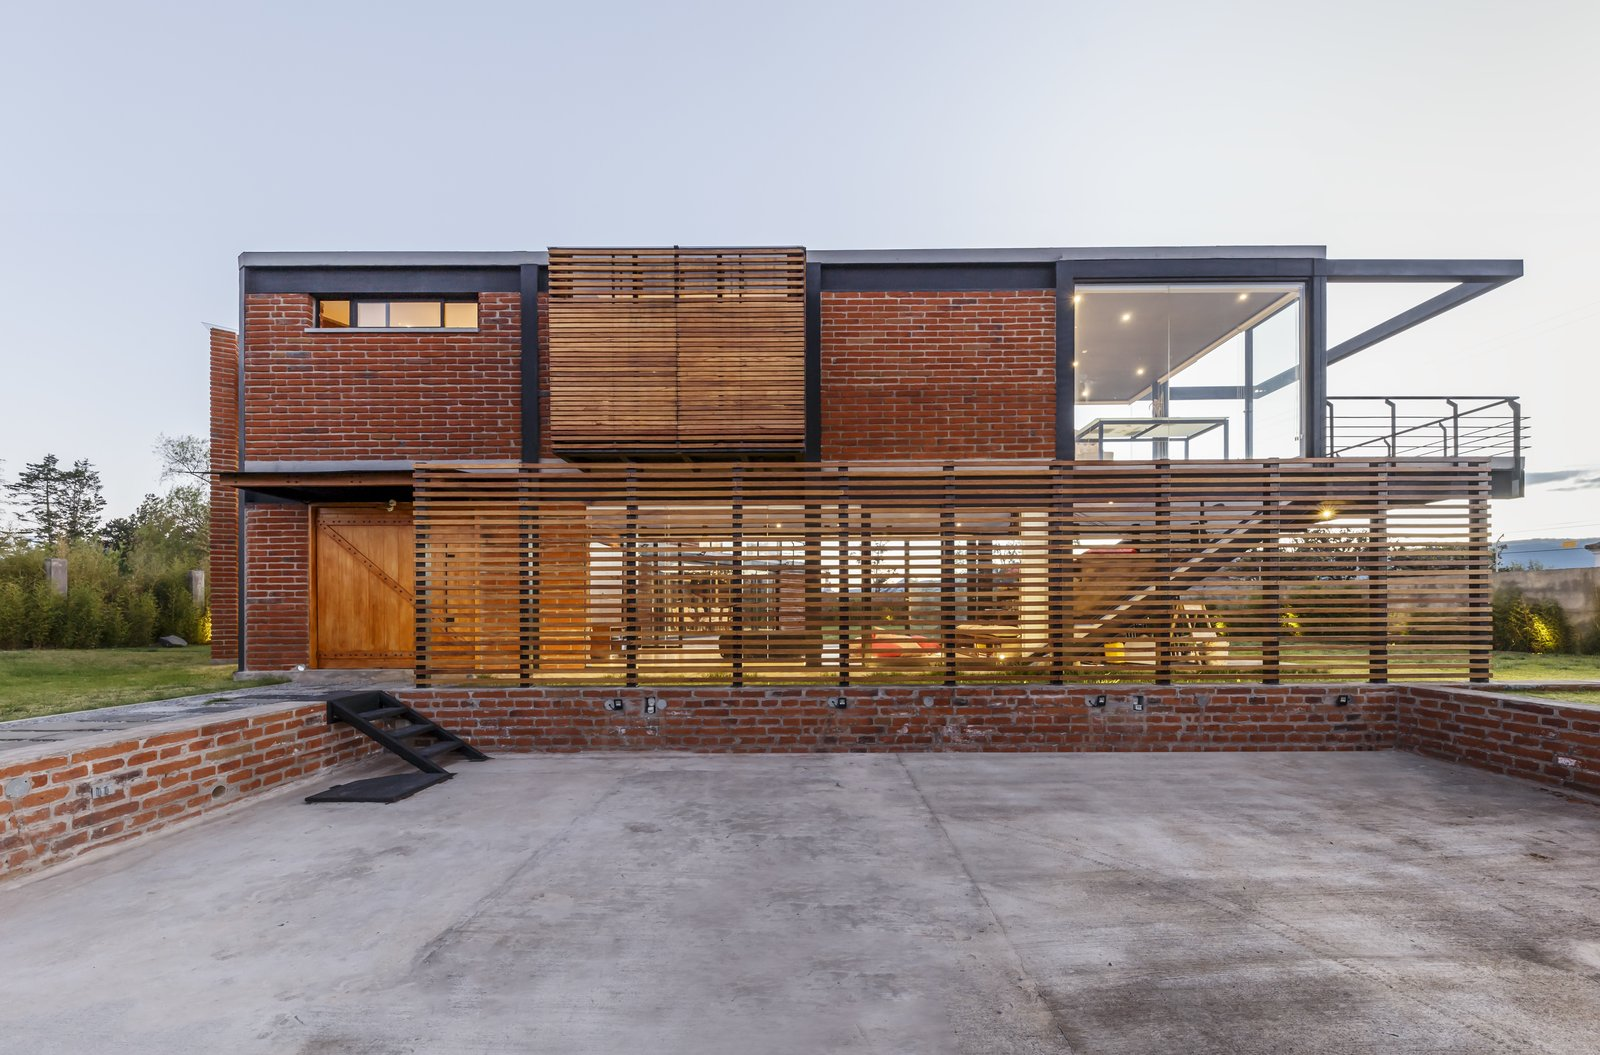 Exterior, Metal, Glass, House, Flat, Brick, and Wood A wooden screen provides privacy, and offers protection from the strong midday sun.  Best Exterior Glass Brick Wood Metal Photos from A Family Lives Harmoniously Together in This Captivating Multi-Generational Home